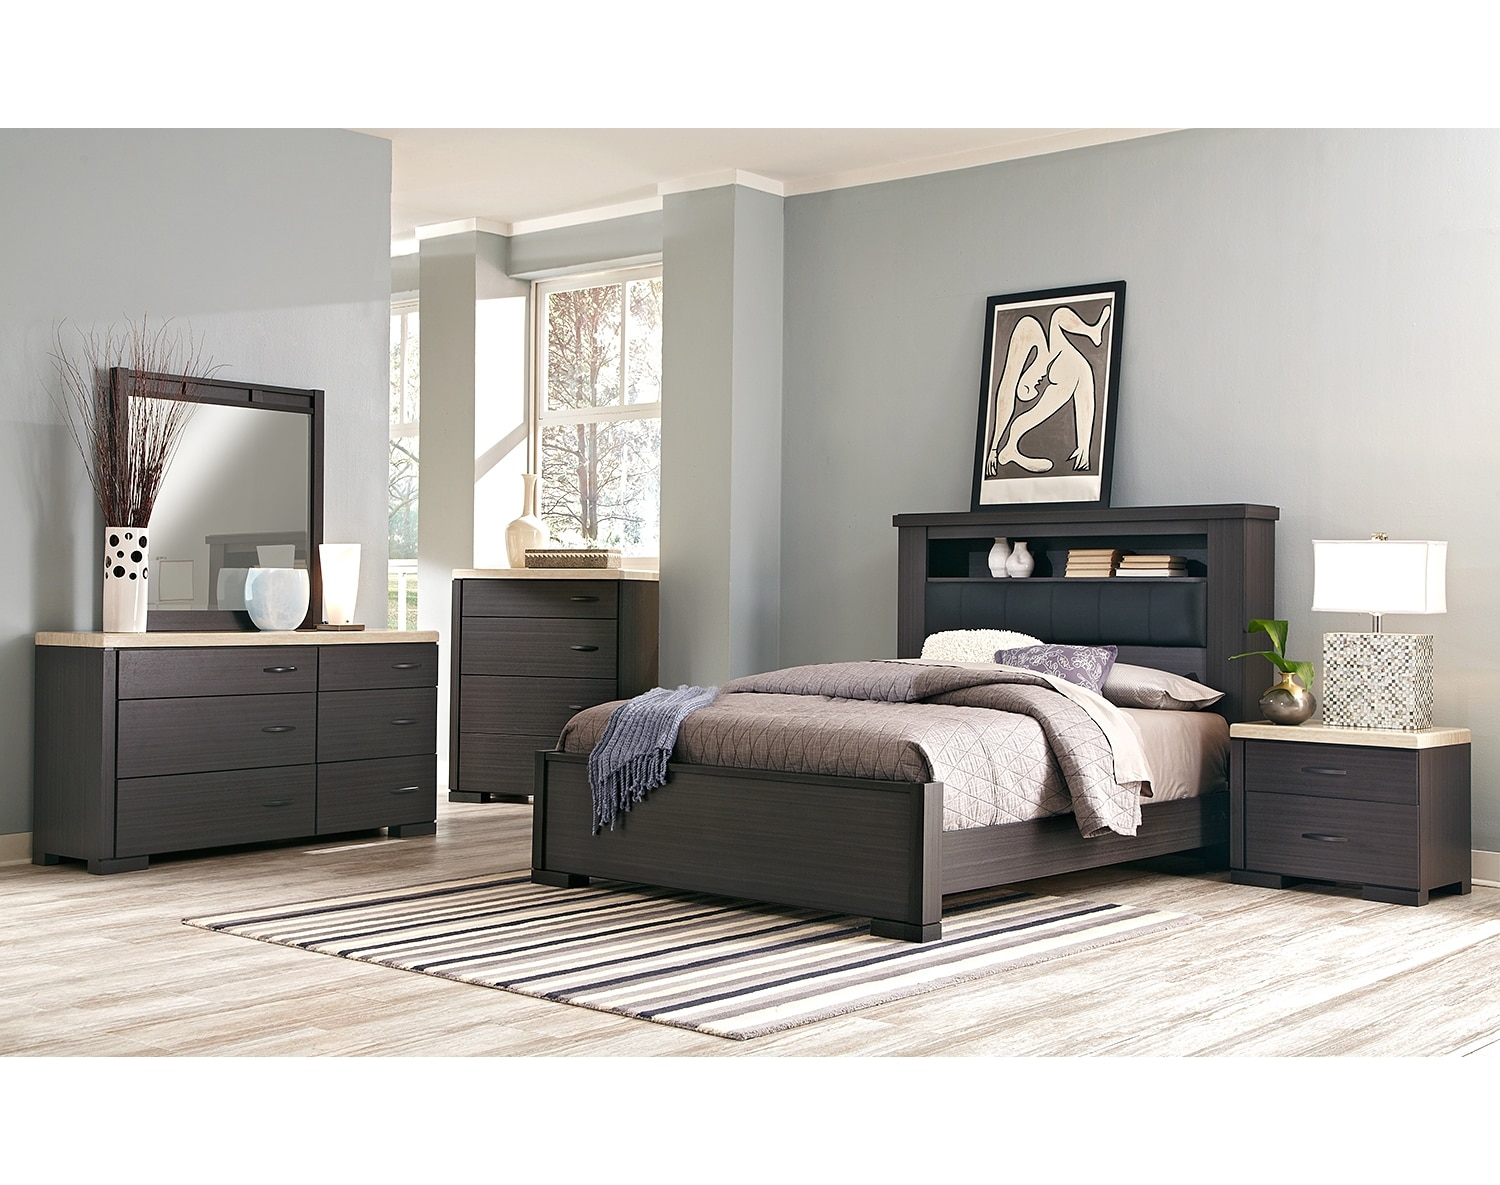 The Camino Collection - Charcoal and Ivory